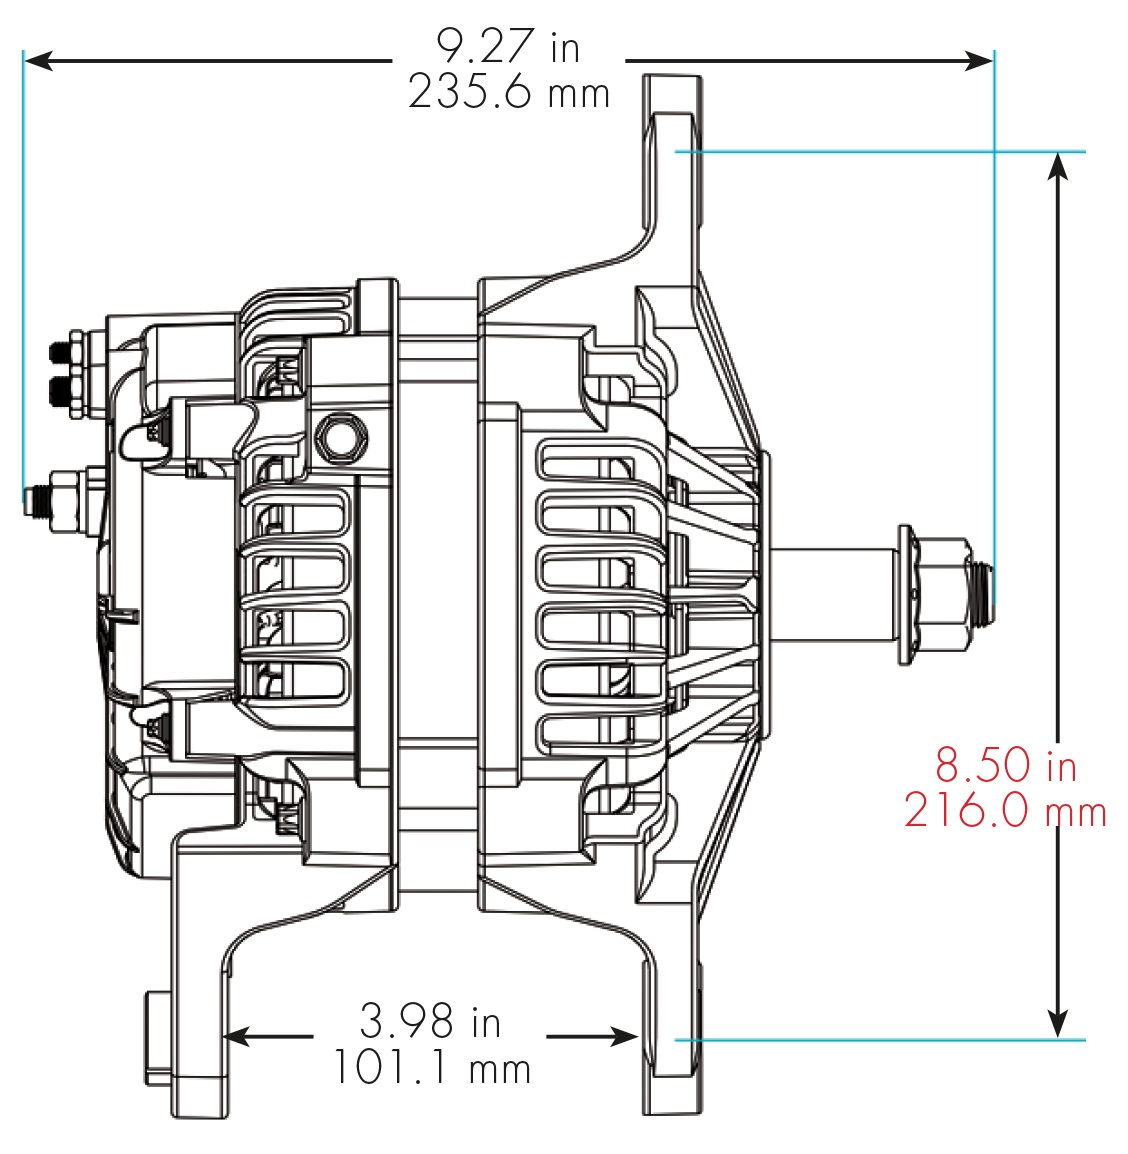 Delco Remy 8700016 Wiring Diagram Electrical Mallory Alternators 1101355 Alternator Internal Hei